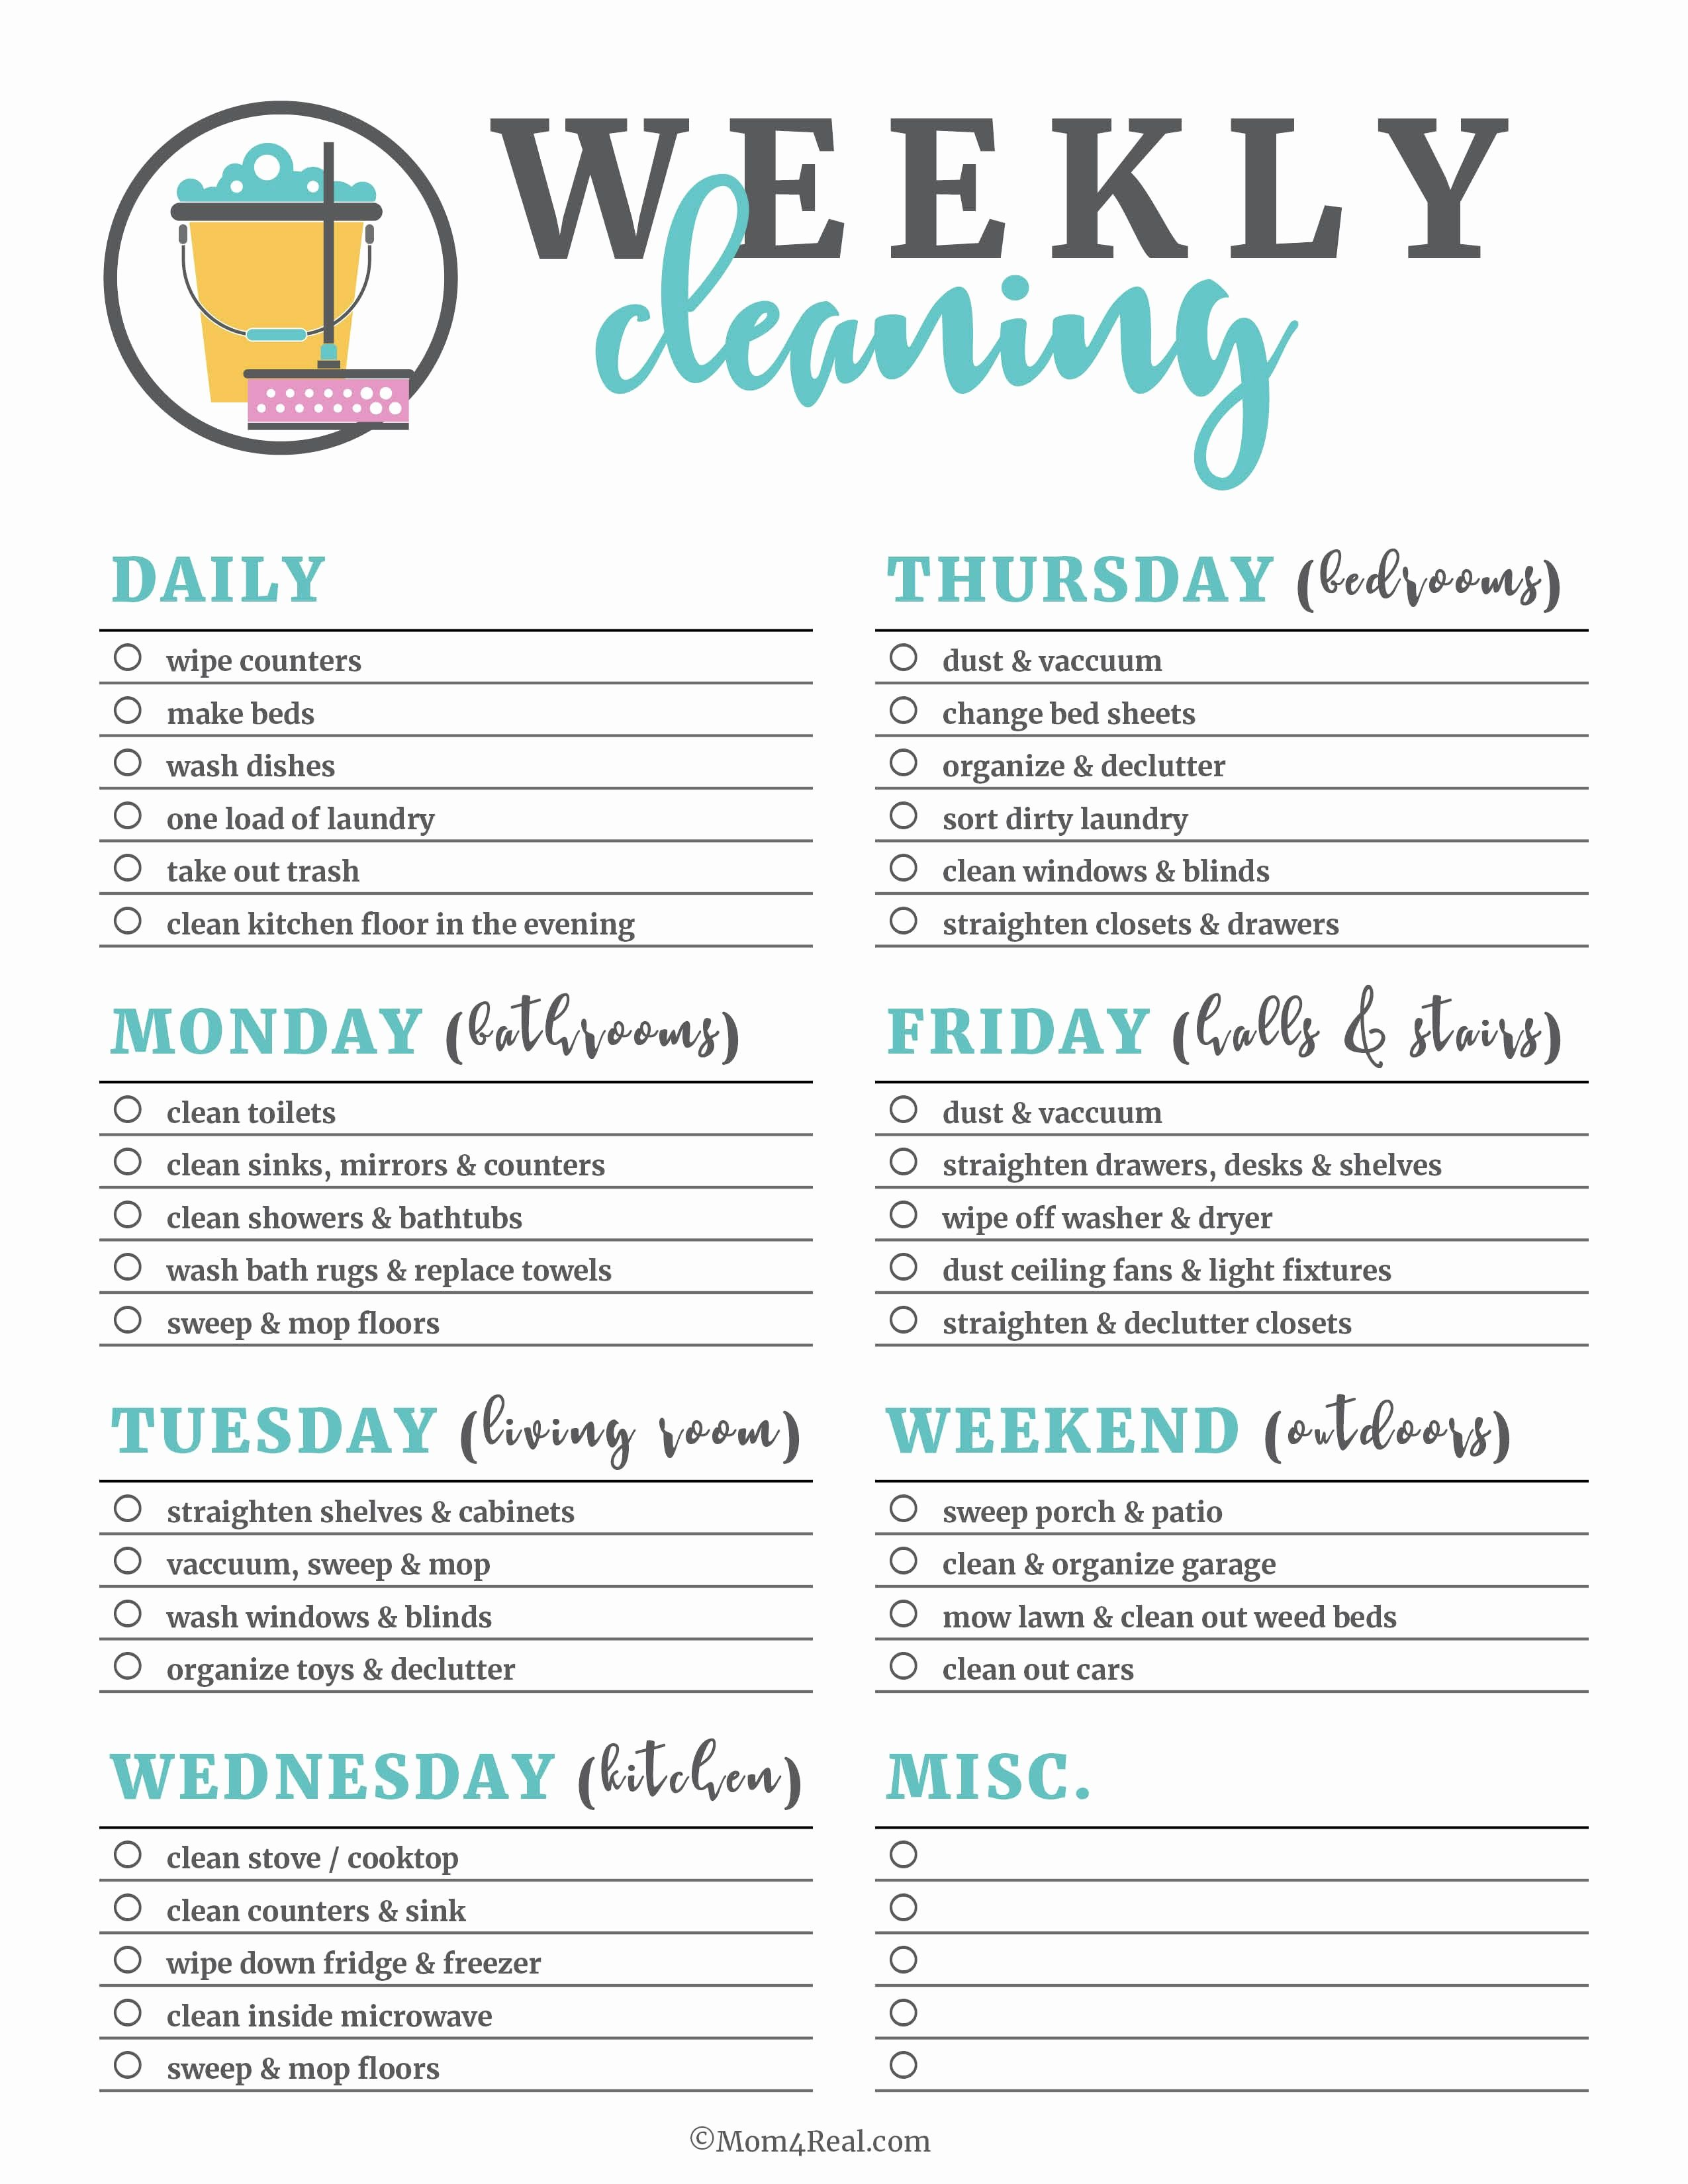 Cleaning Service Checklist Template Elegant Printable Cleaning Checklists for Daily Weekly and